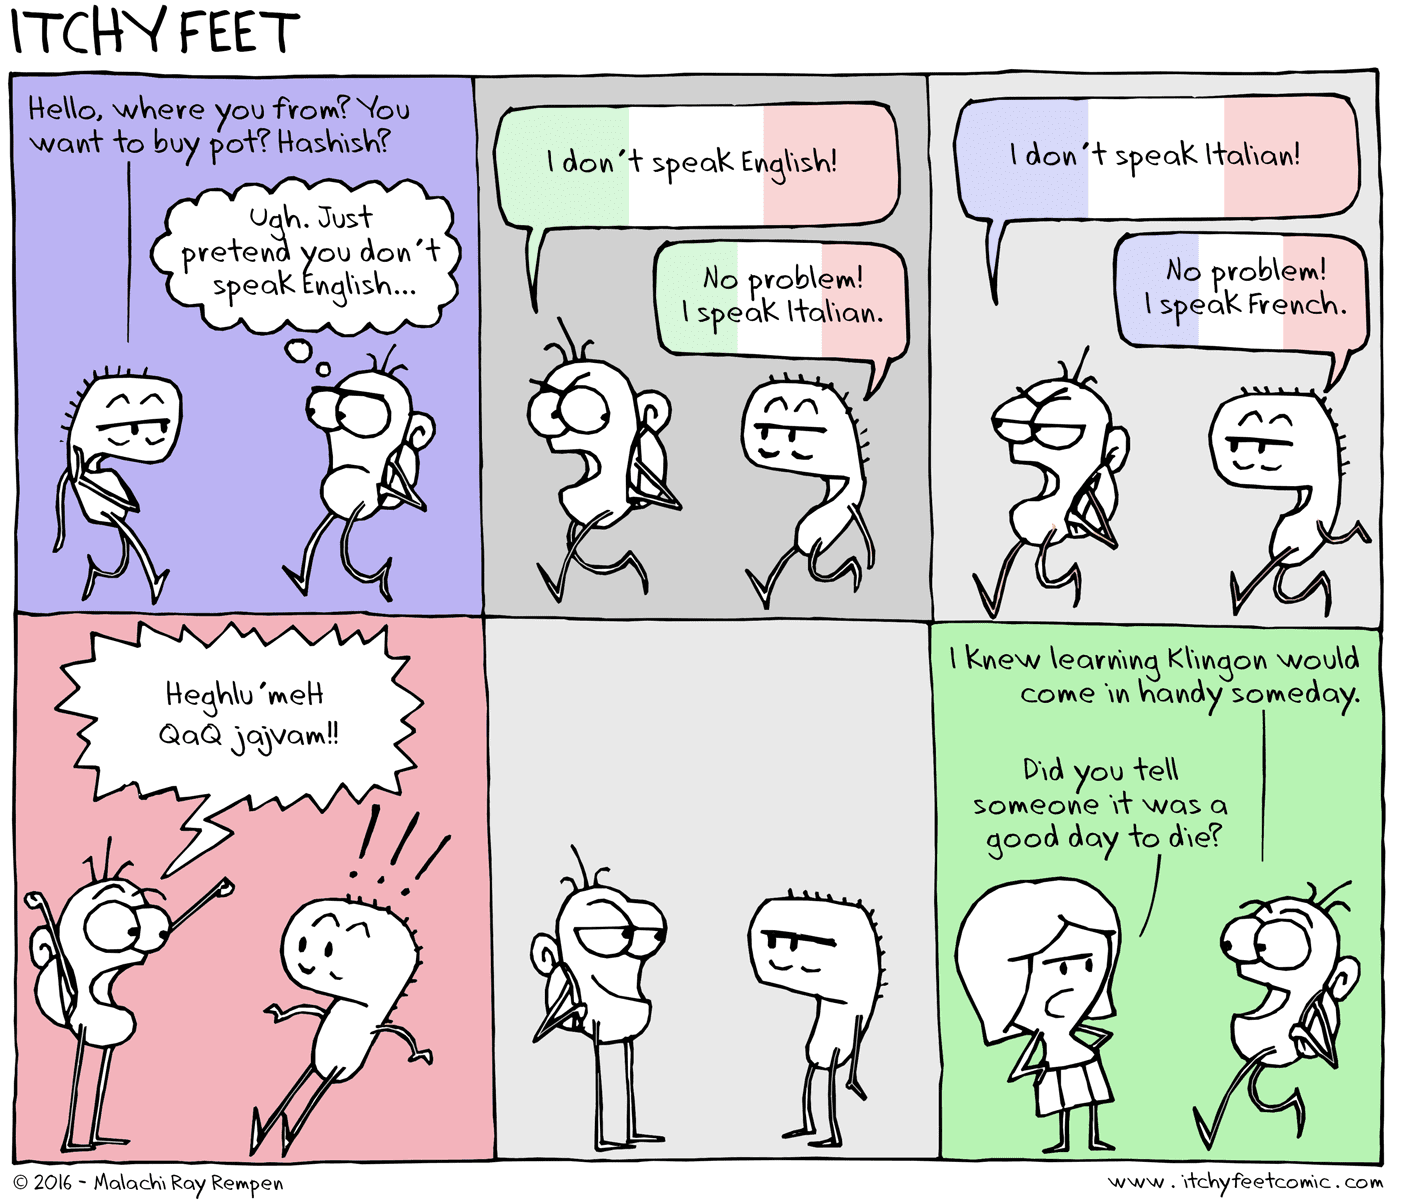 Learning Klingon can be great to confuse people who speak lots of languages like polyglots